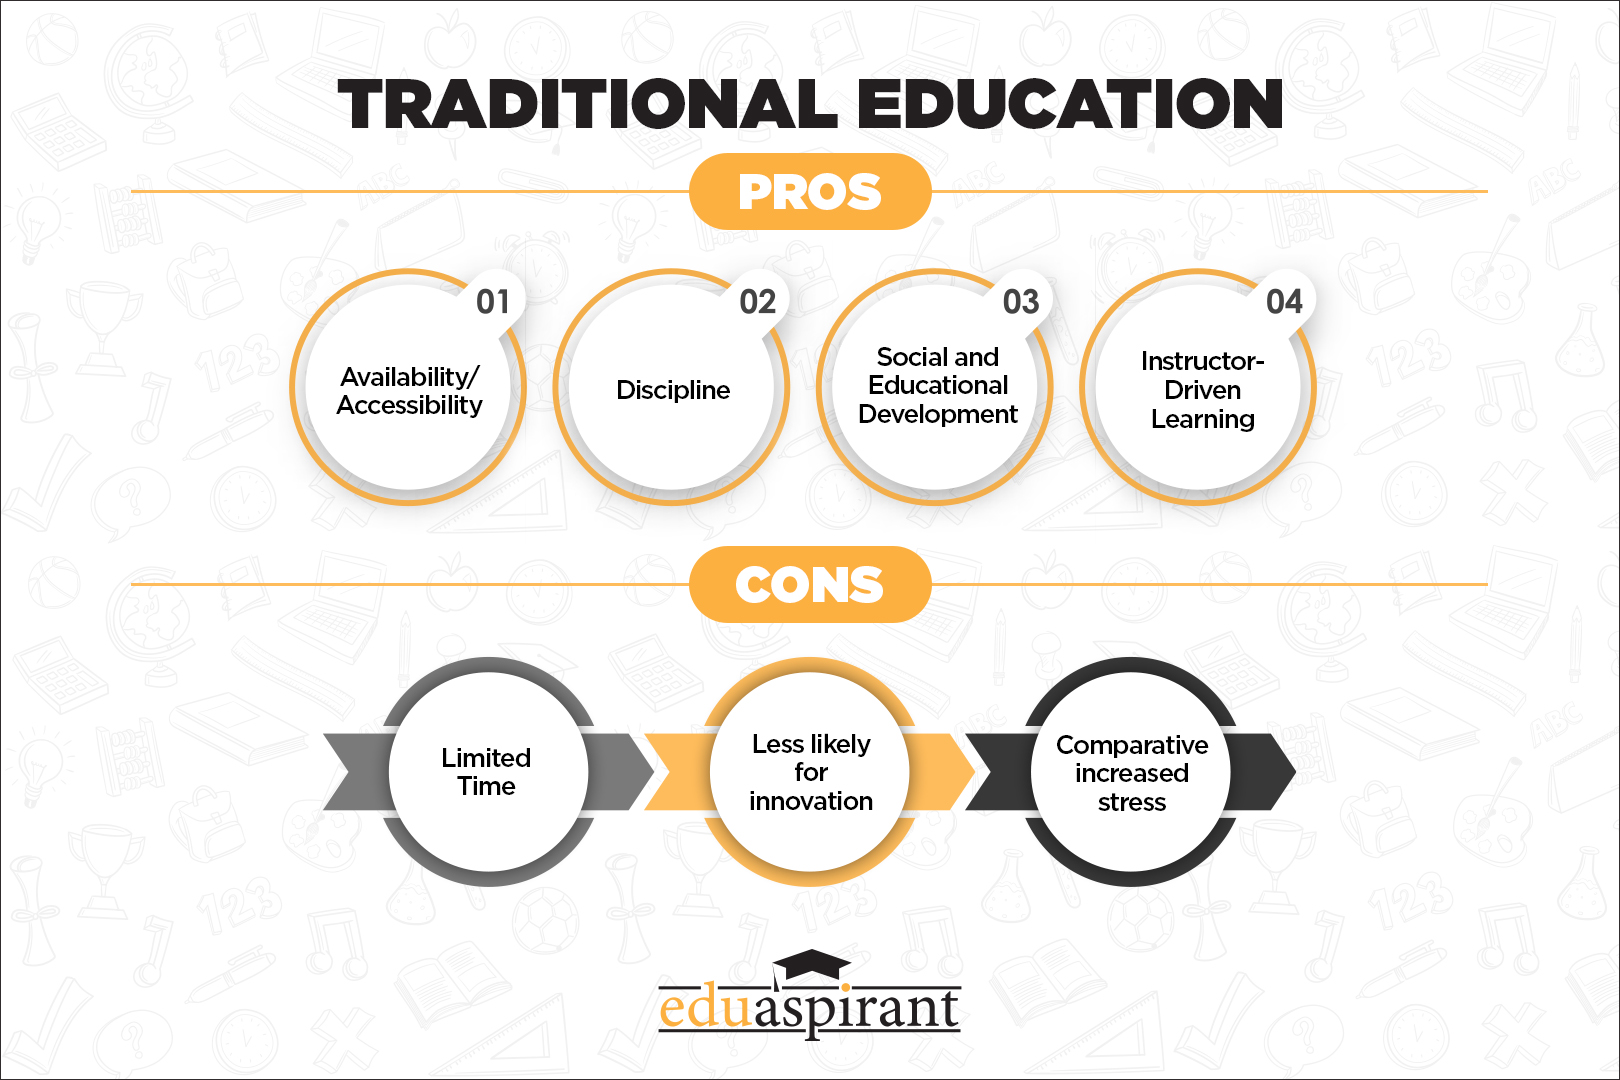 pros and cons traditional education